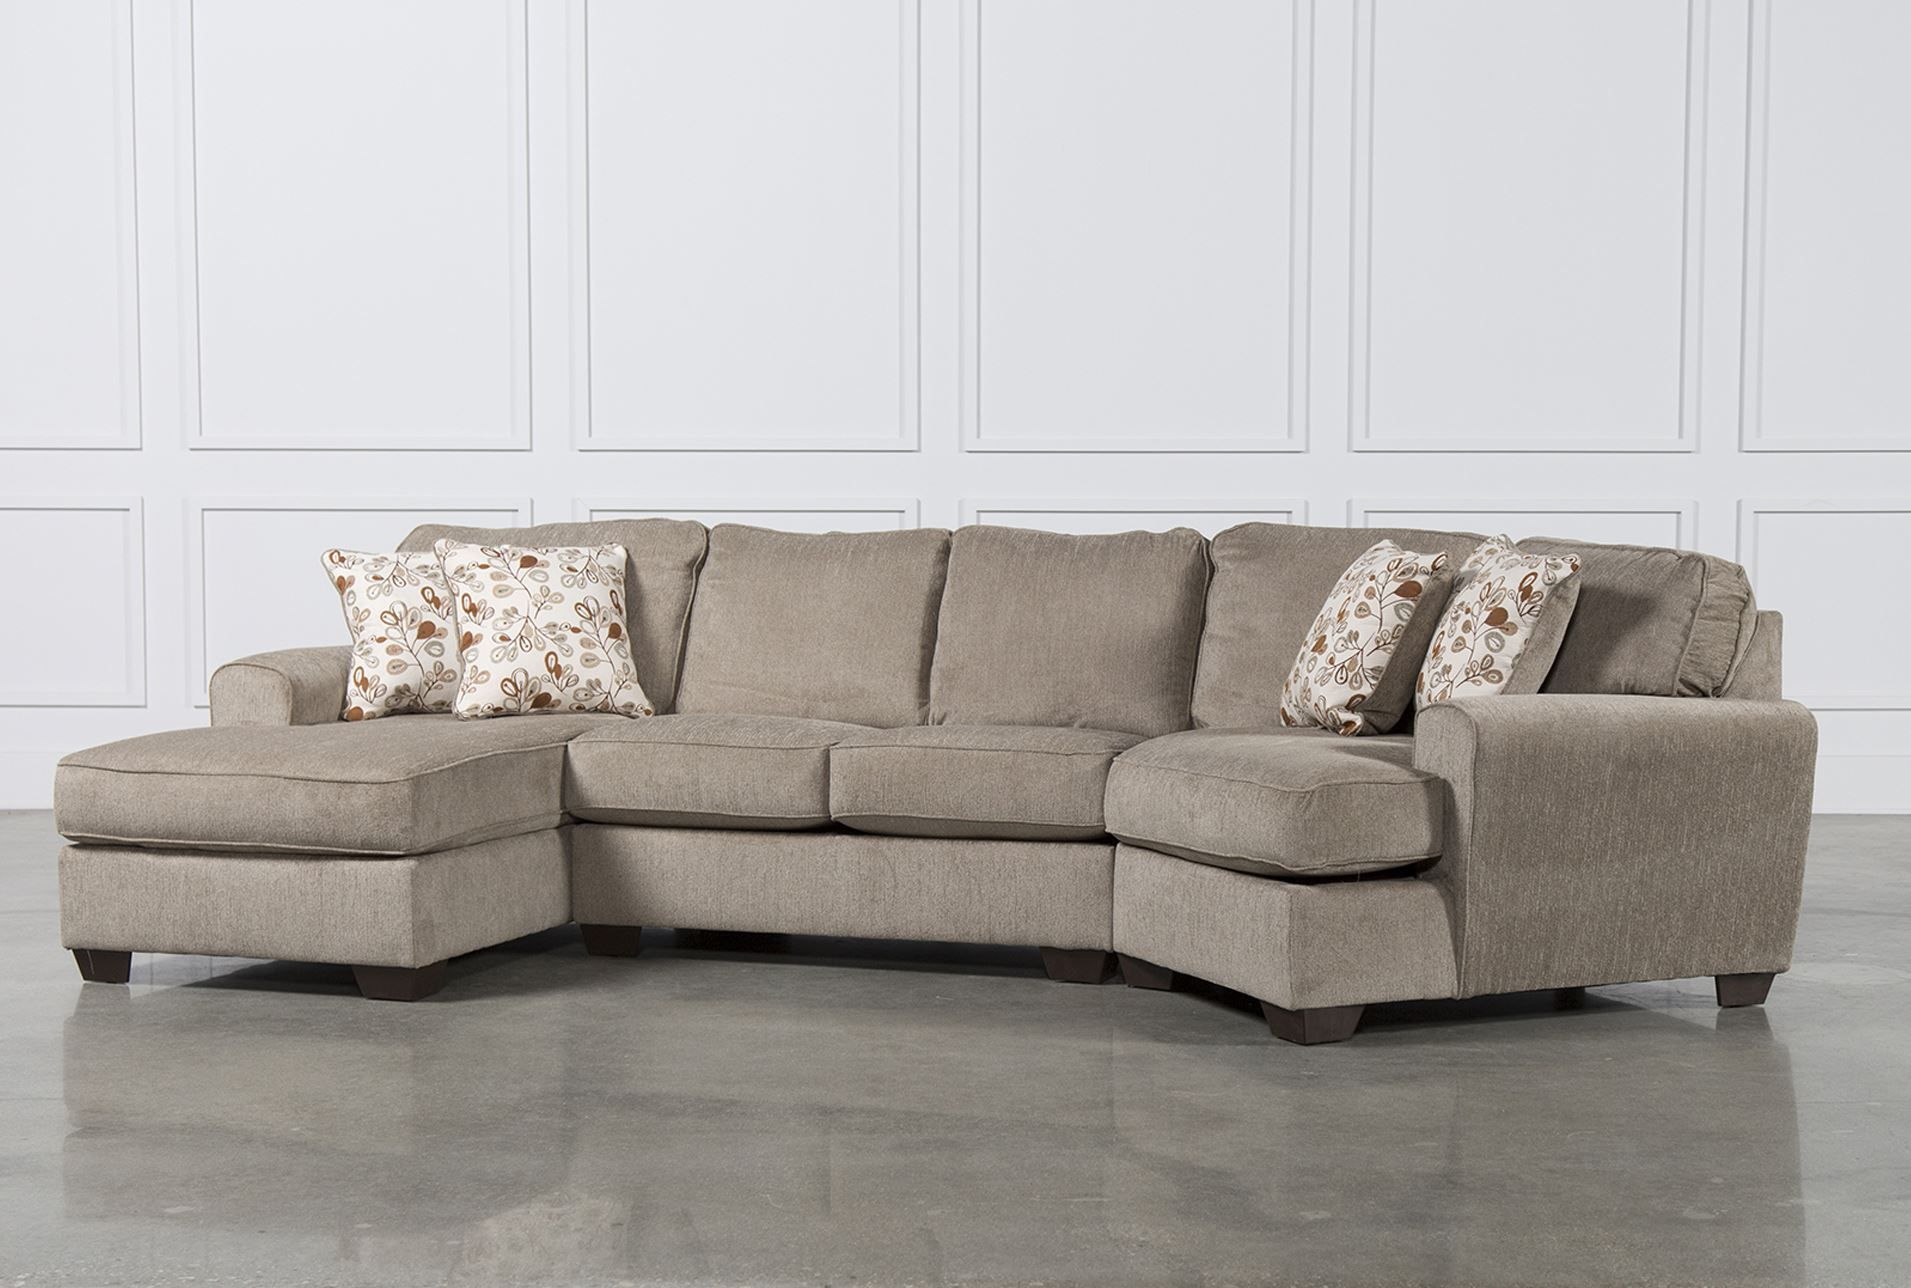 Katisha 30500-16-34-75 3-Piece Fabric Sectional Sofa with Left Chaise Armless Loveseat Right Cuddler and Accent Pillows Included in Platinum Color ... : shop sectional sofas - Sectionals, Sofas & Couches